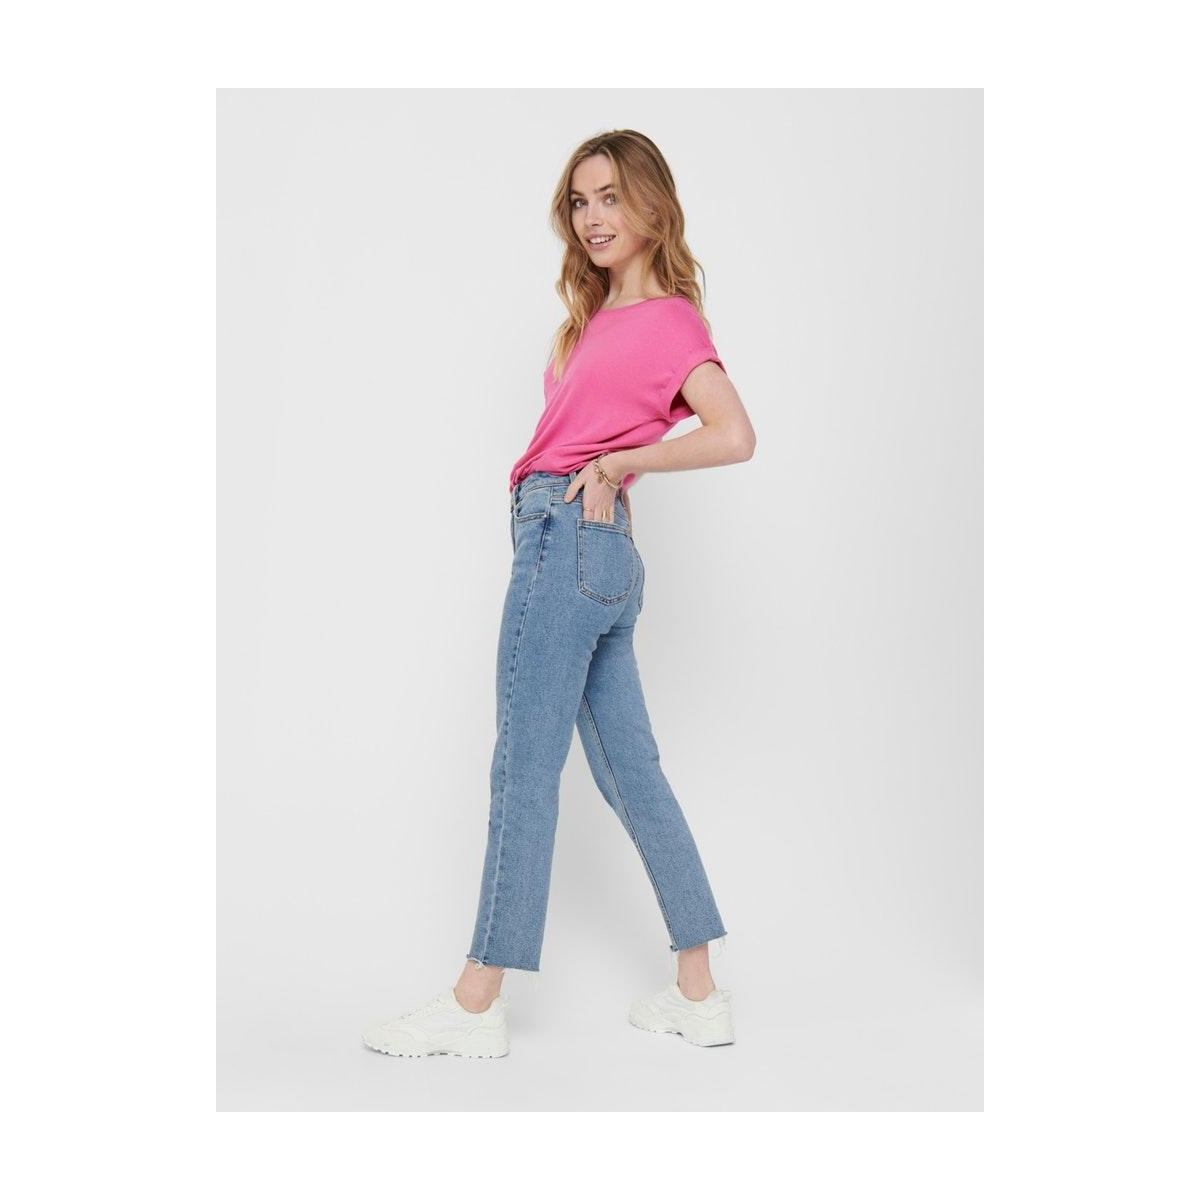 onlmoster s/s o-neck top noos jrs 15106662 only t-shirt ibis rose